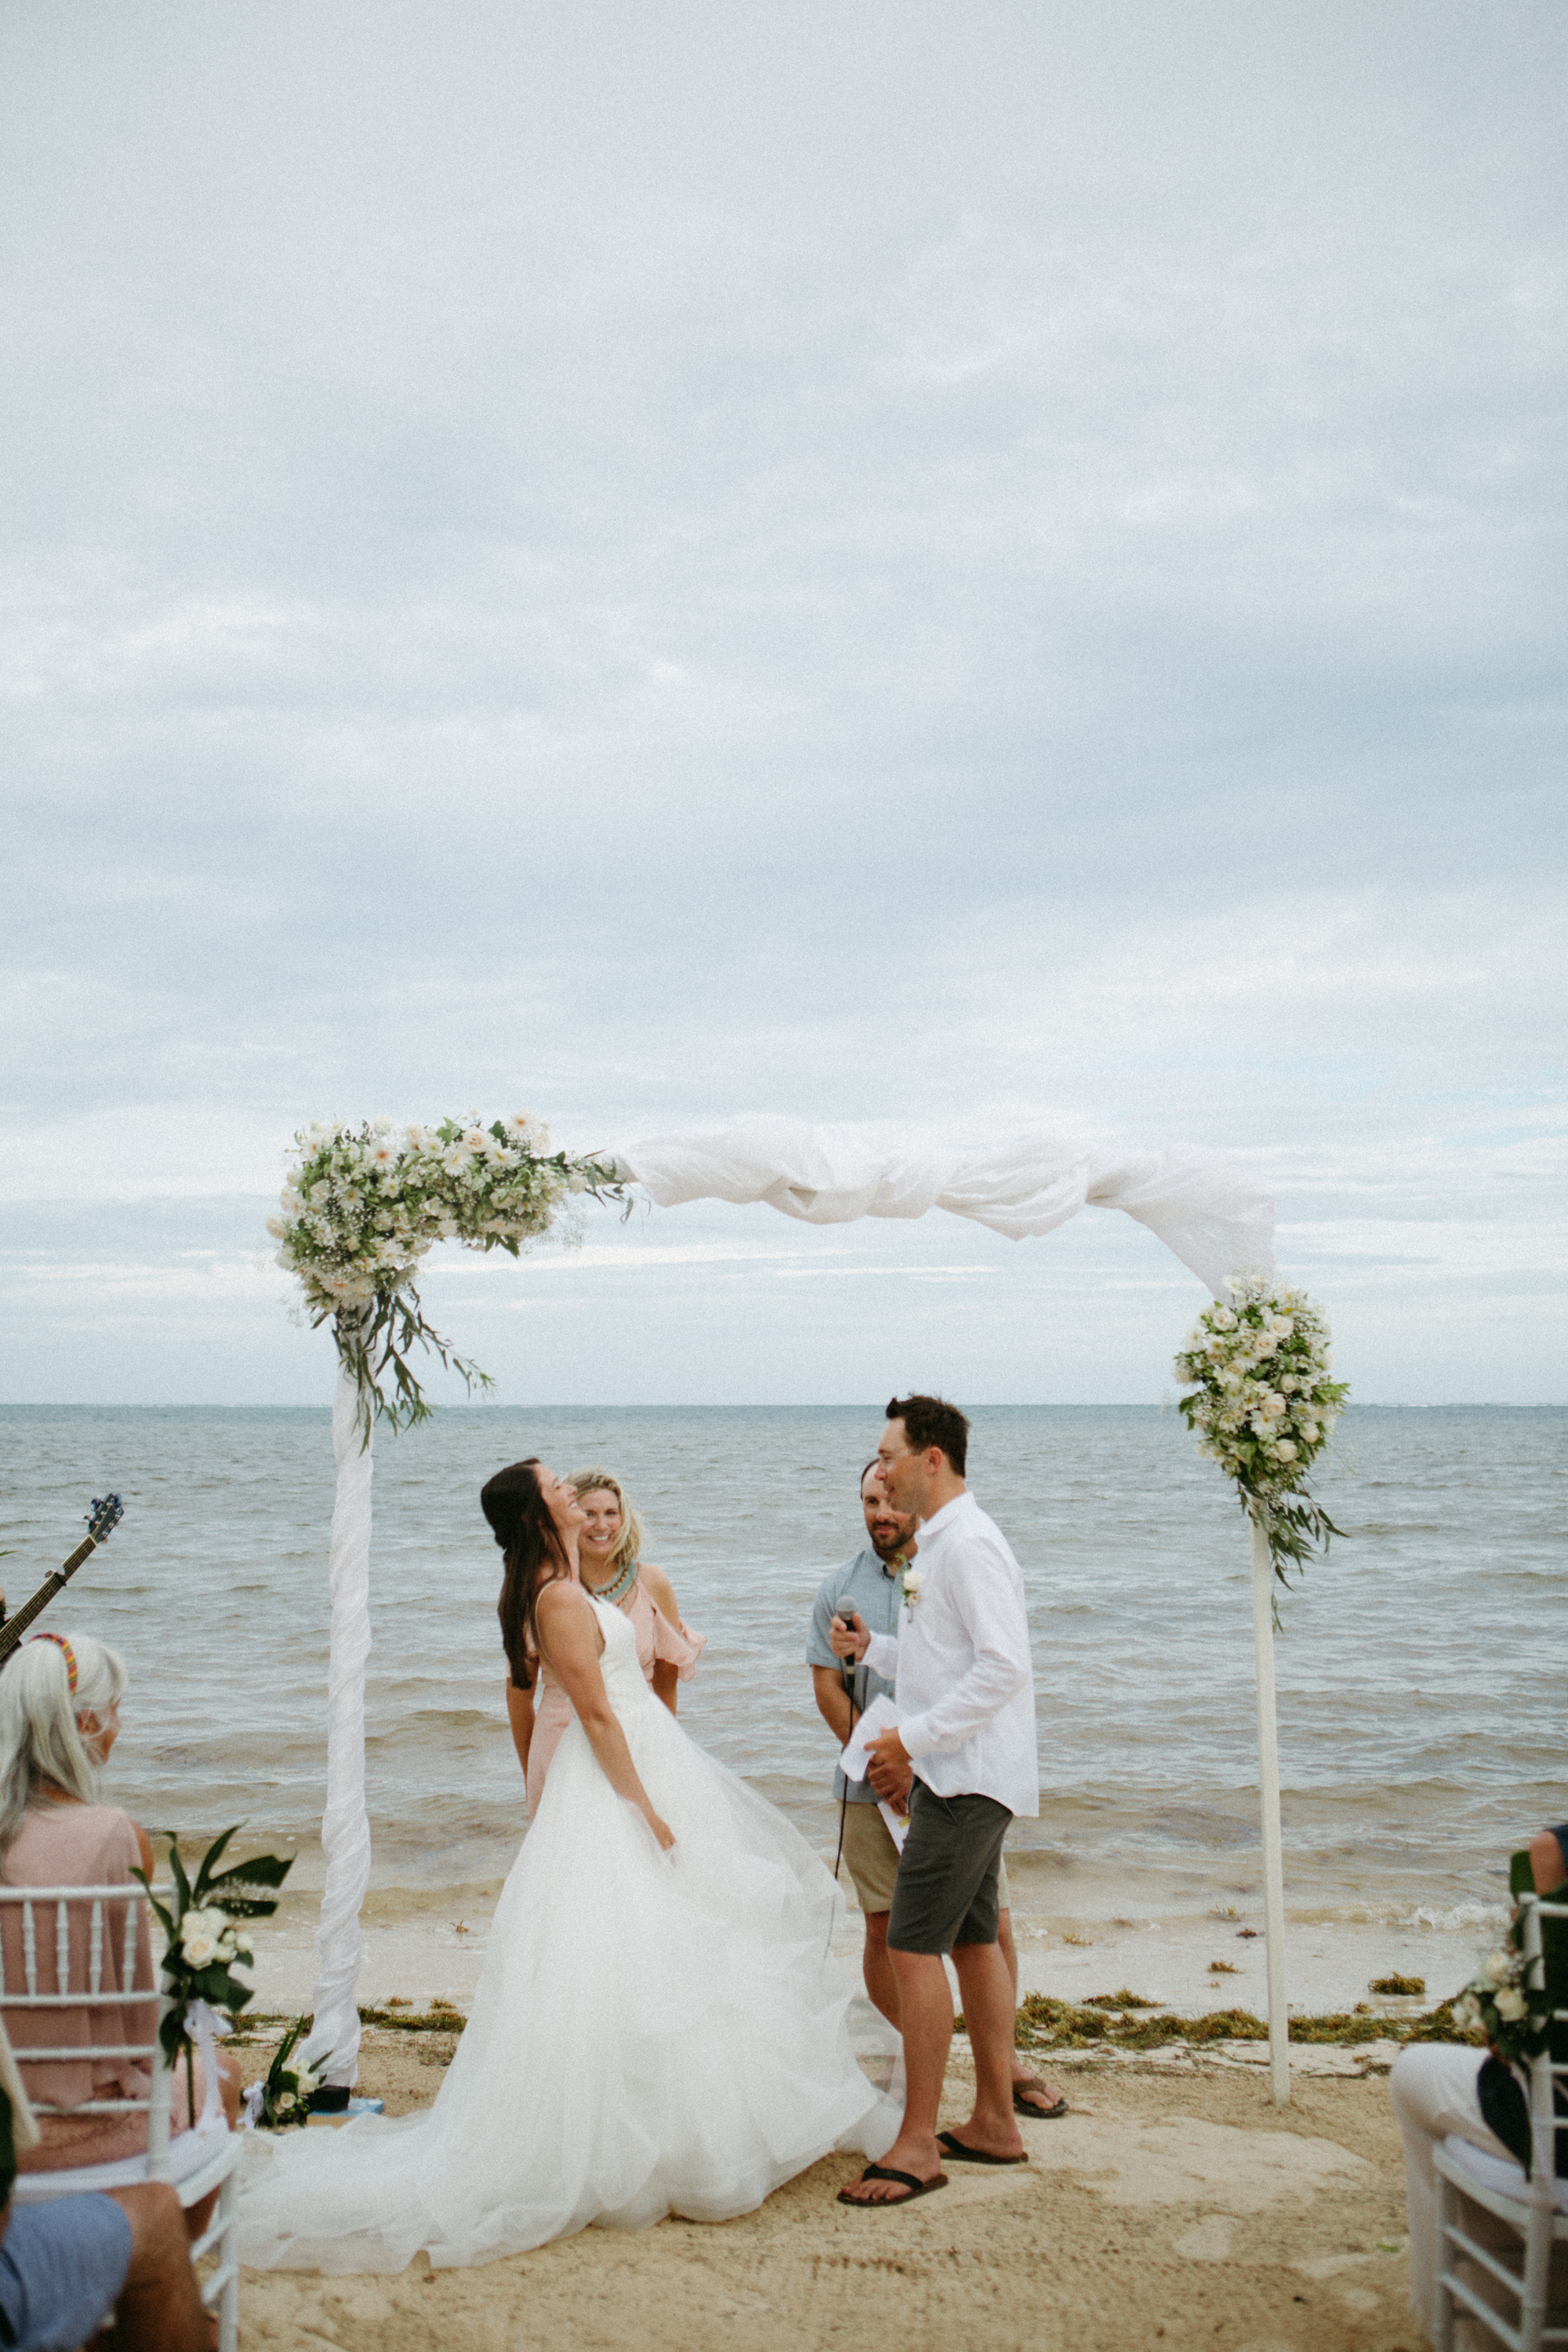 san-pescador-belize-wedding-christinemariephoto-j-k-95.jpg